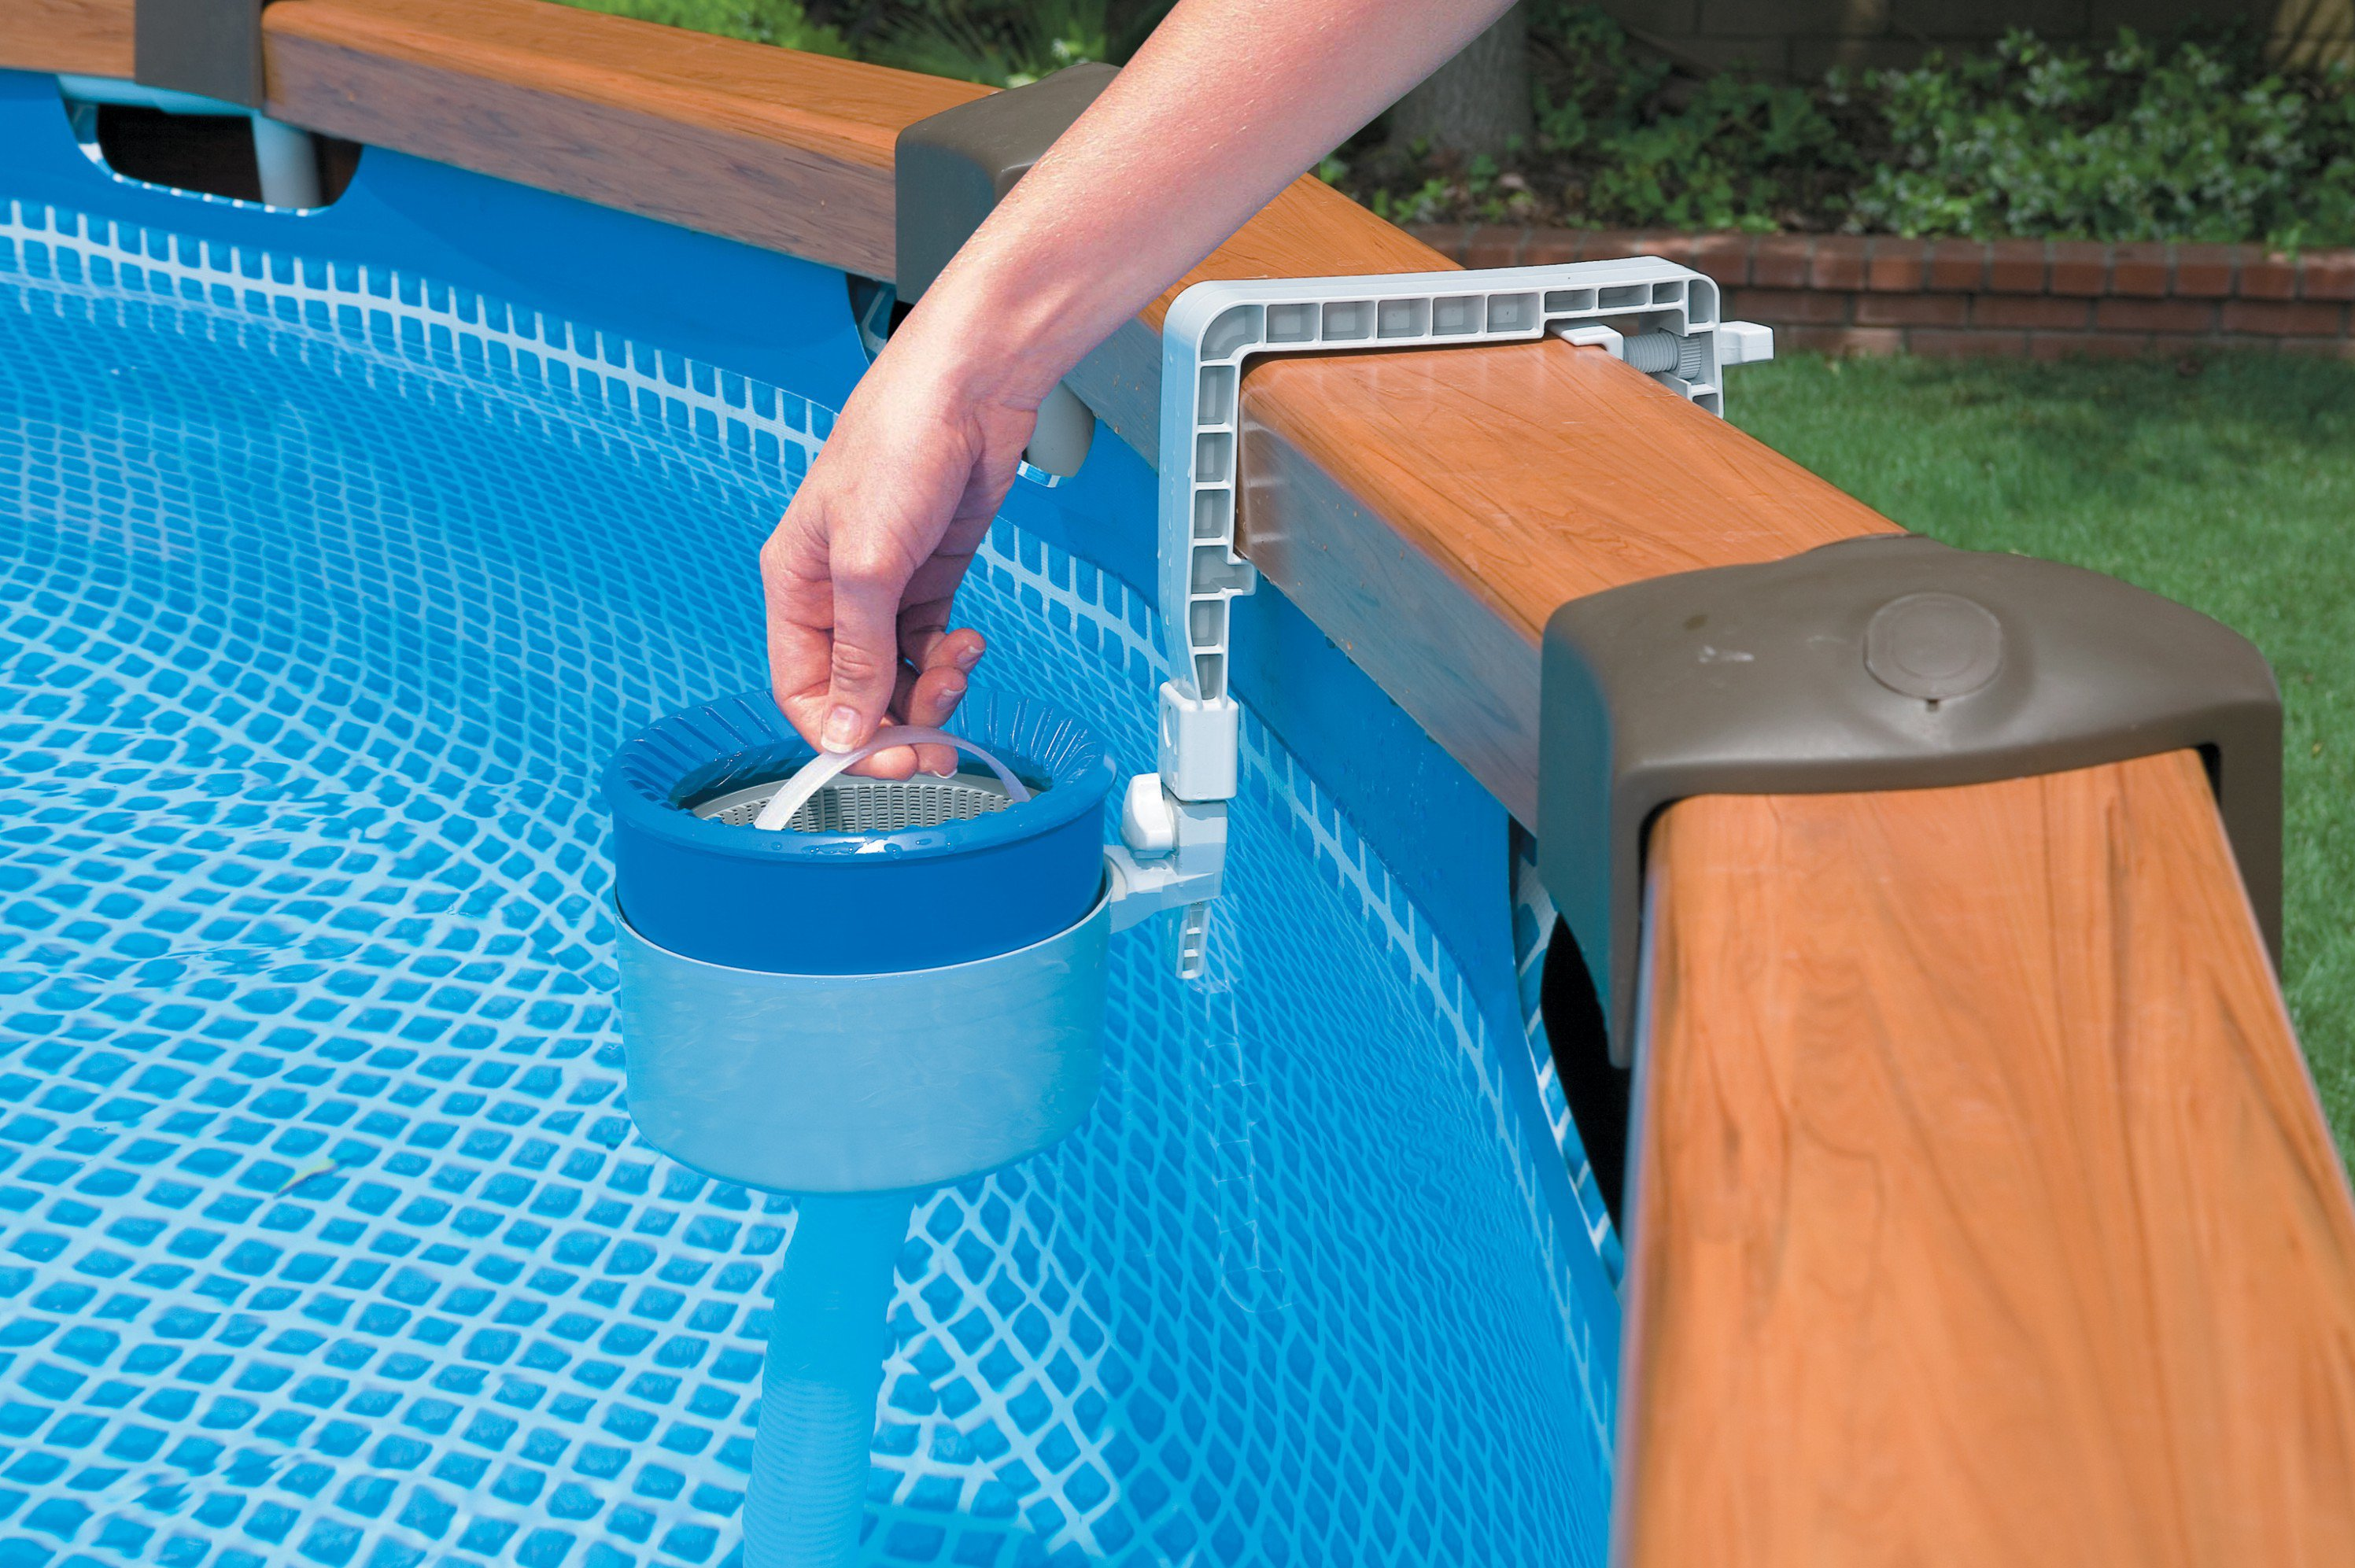 Intex Deluxe Surface skimmer